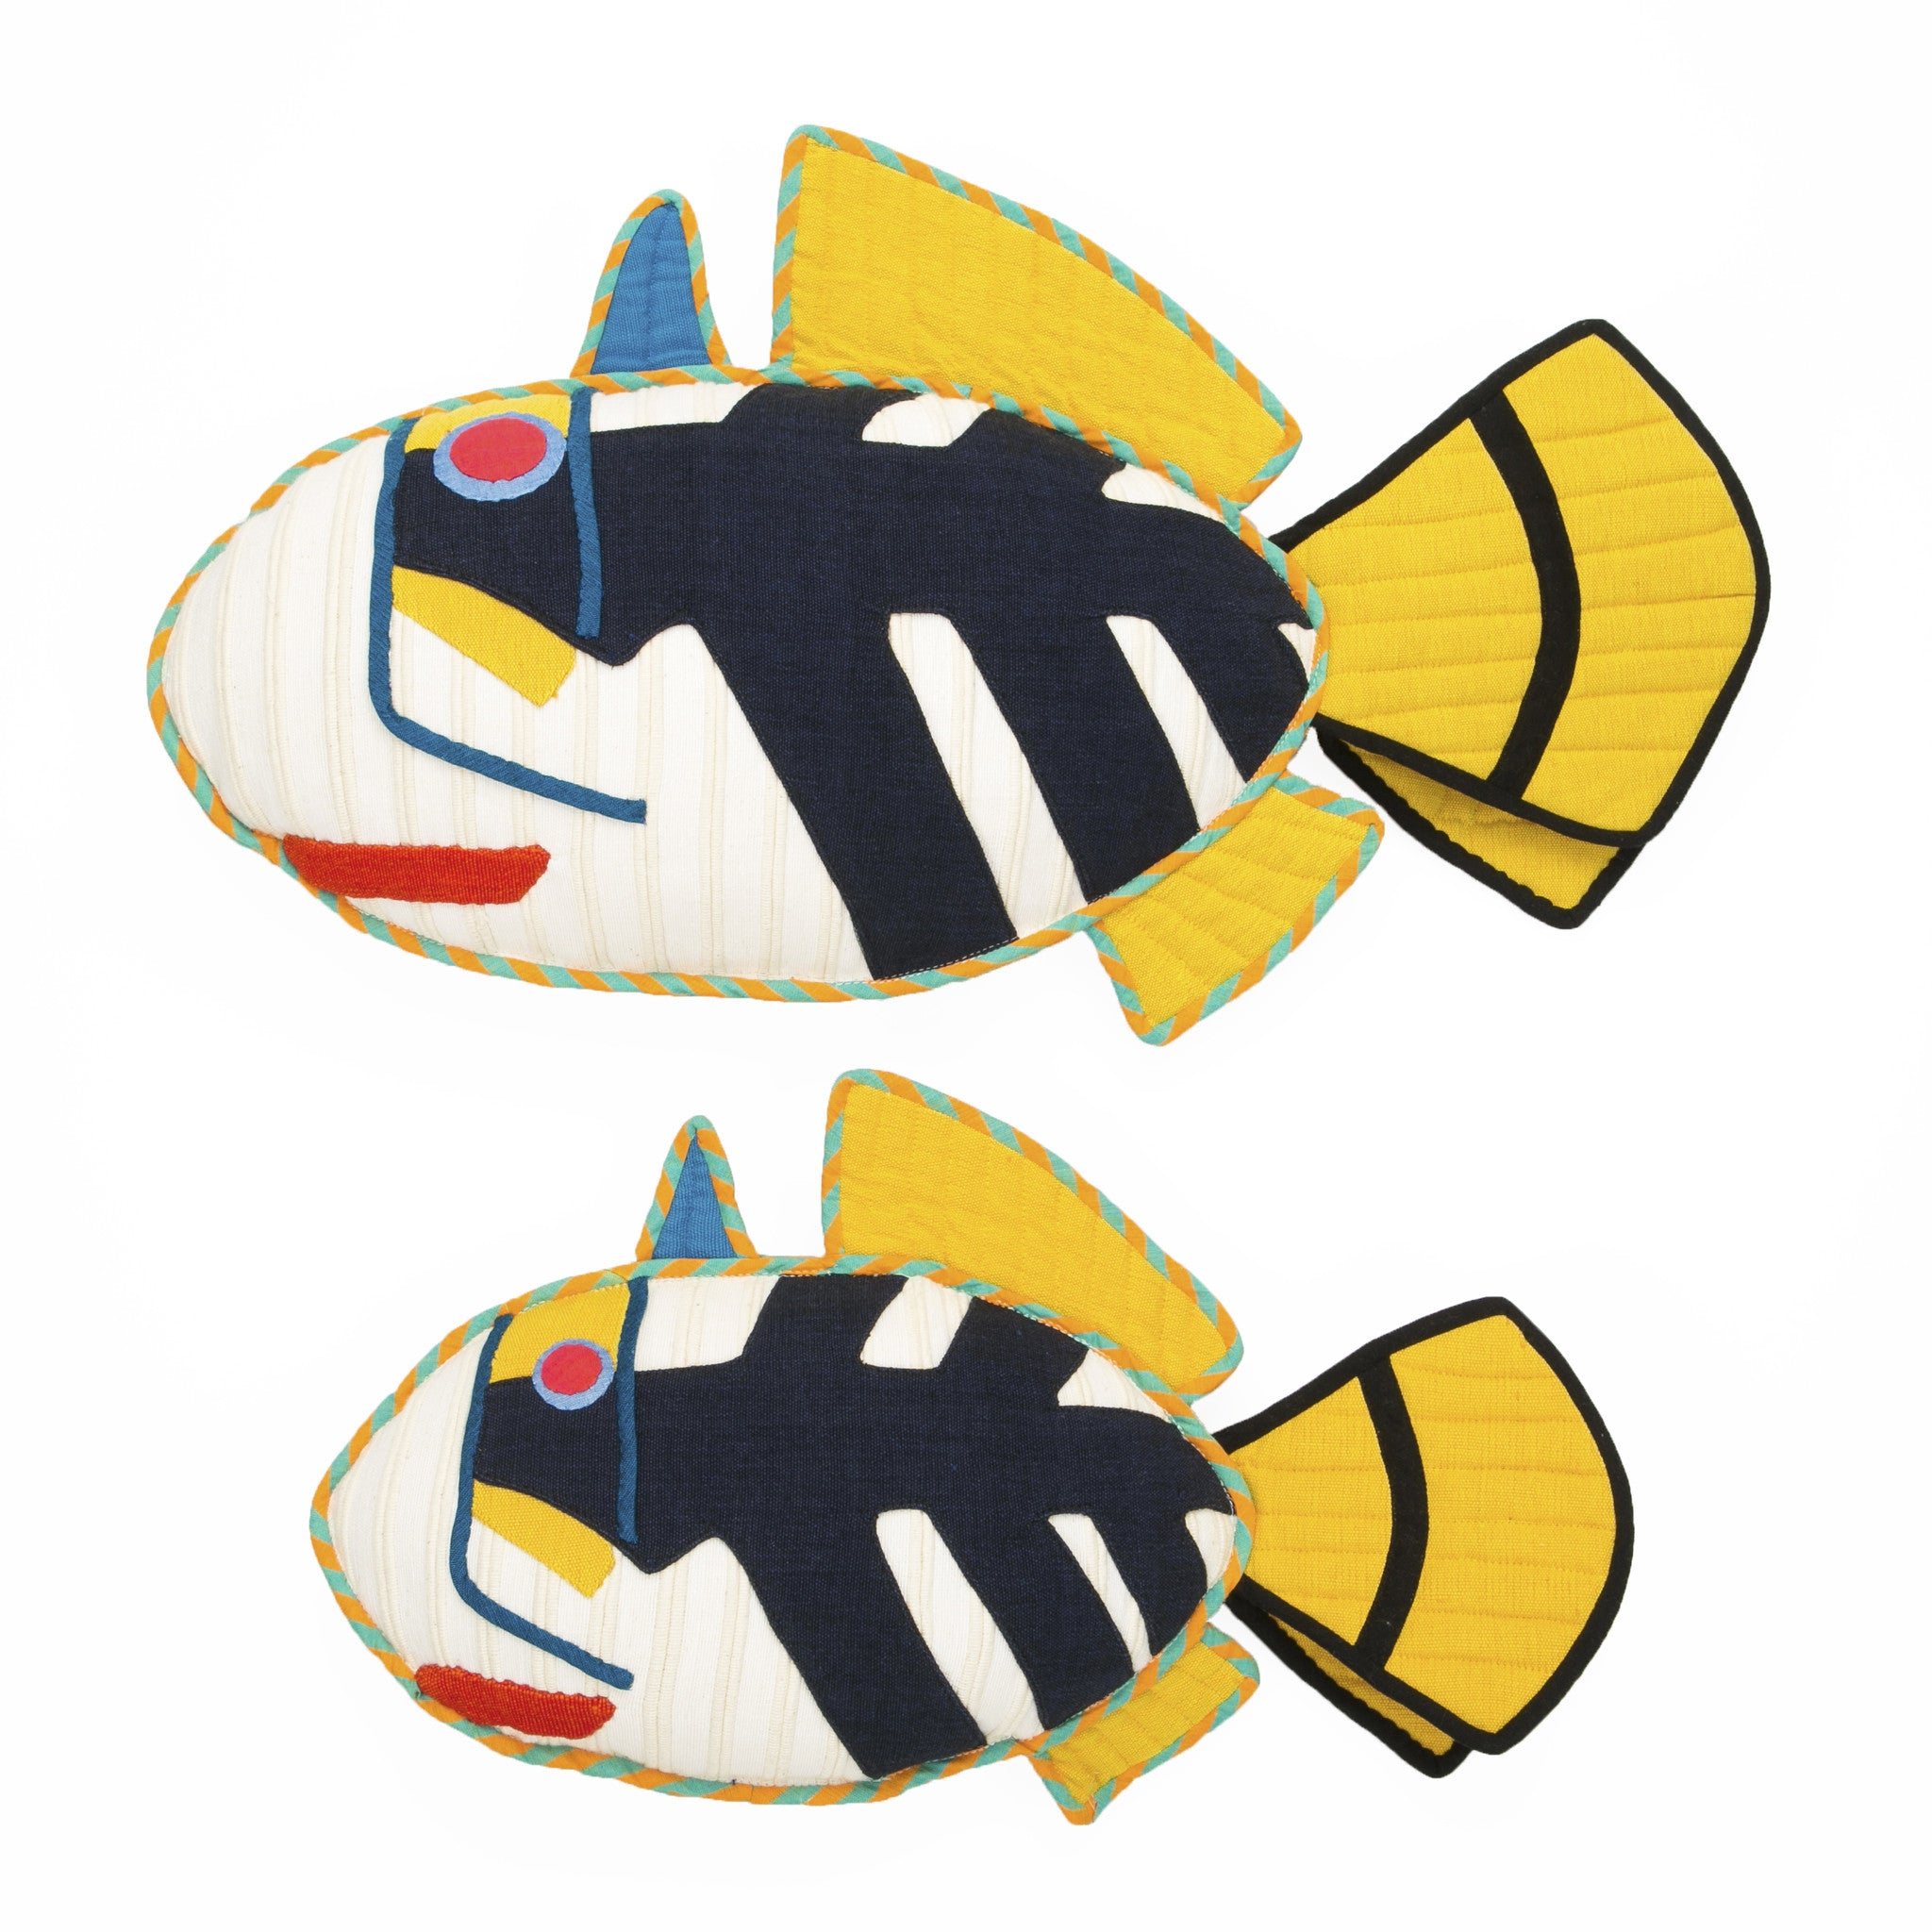 Fish Pillow - Pepper, the Picasso Trigger Fish Pillow by Barefoot